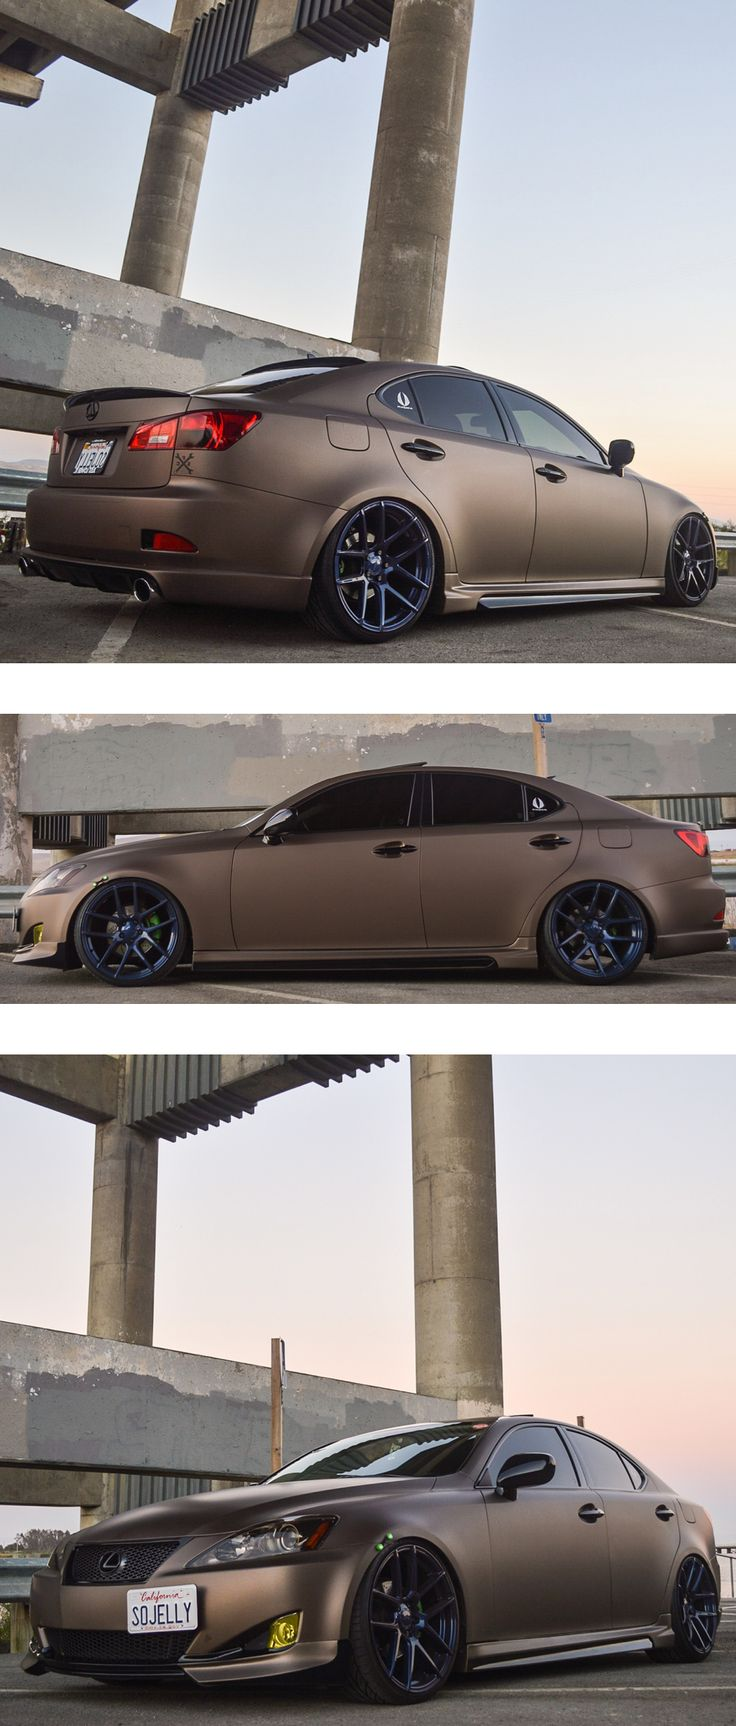 Sick wrap and images of this lexus from speed fiendz garage wrapped with 3m 1080 matte carsvehicle